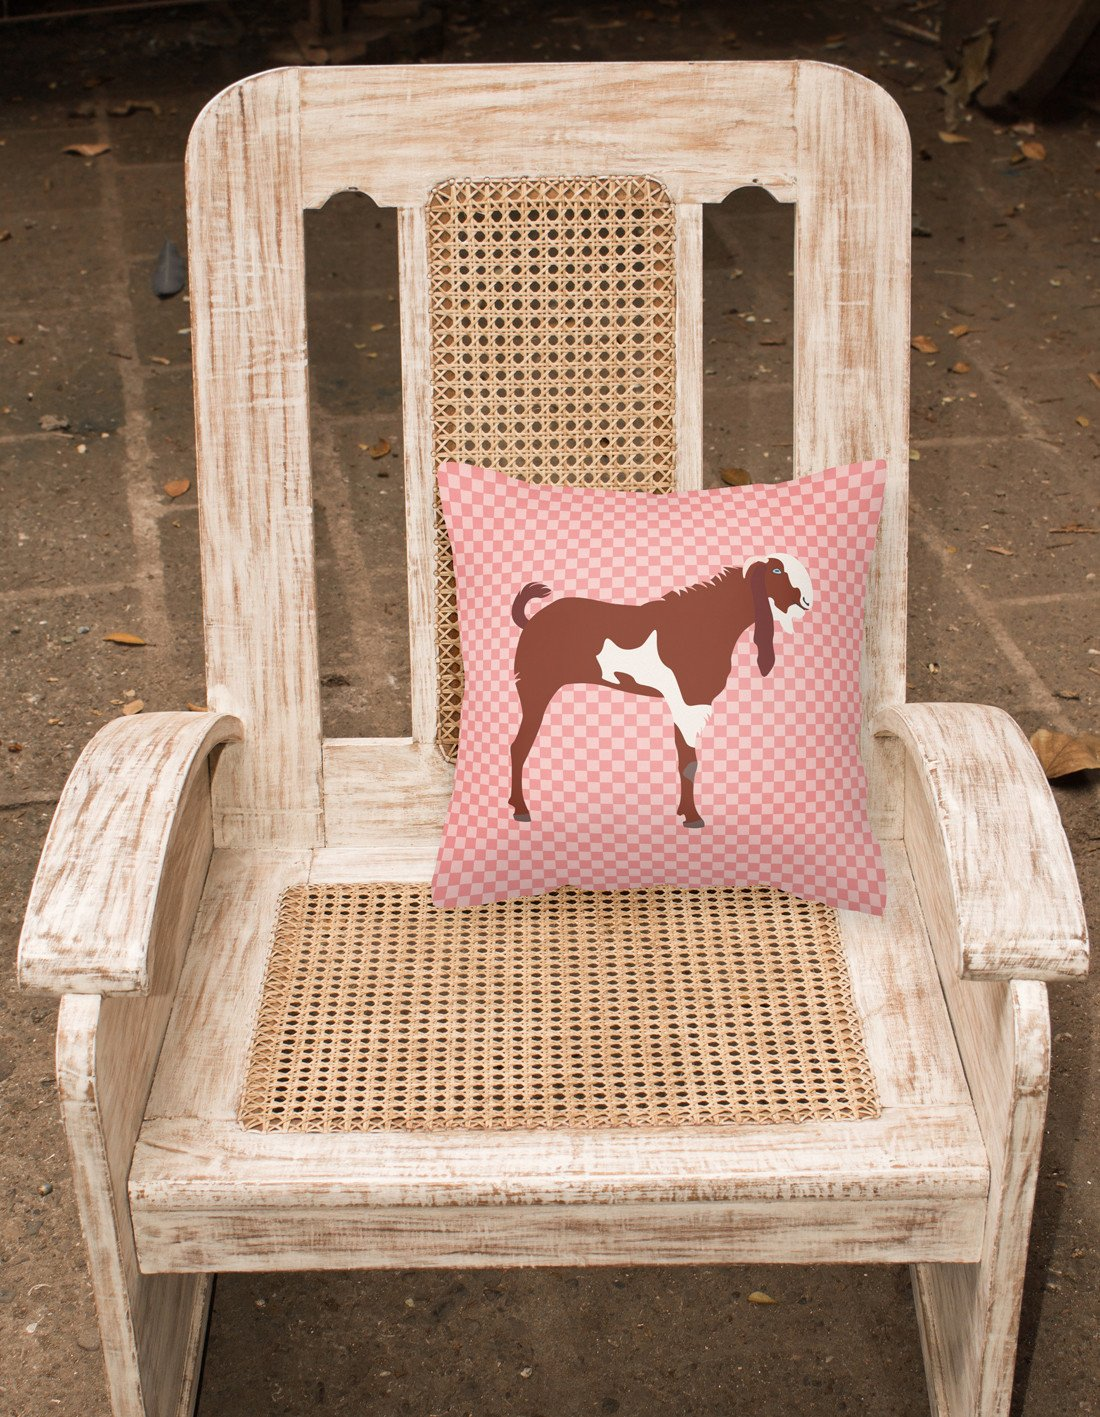 Jamnapari Goat Pink Check Fabric Decorative Pillow BB7890PW1818 by Caroline's Treasures